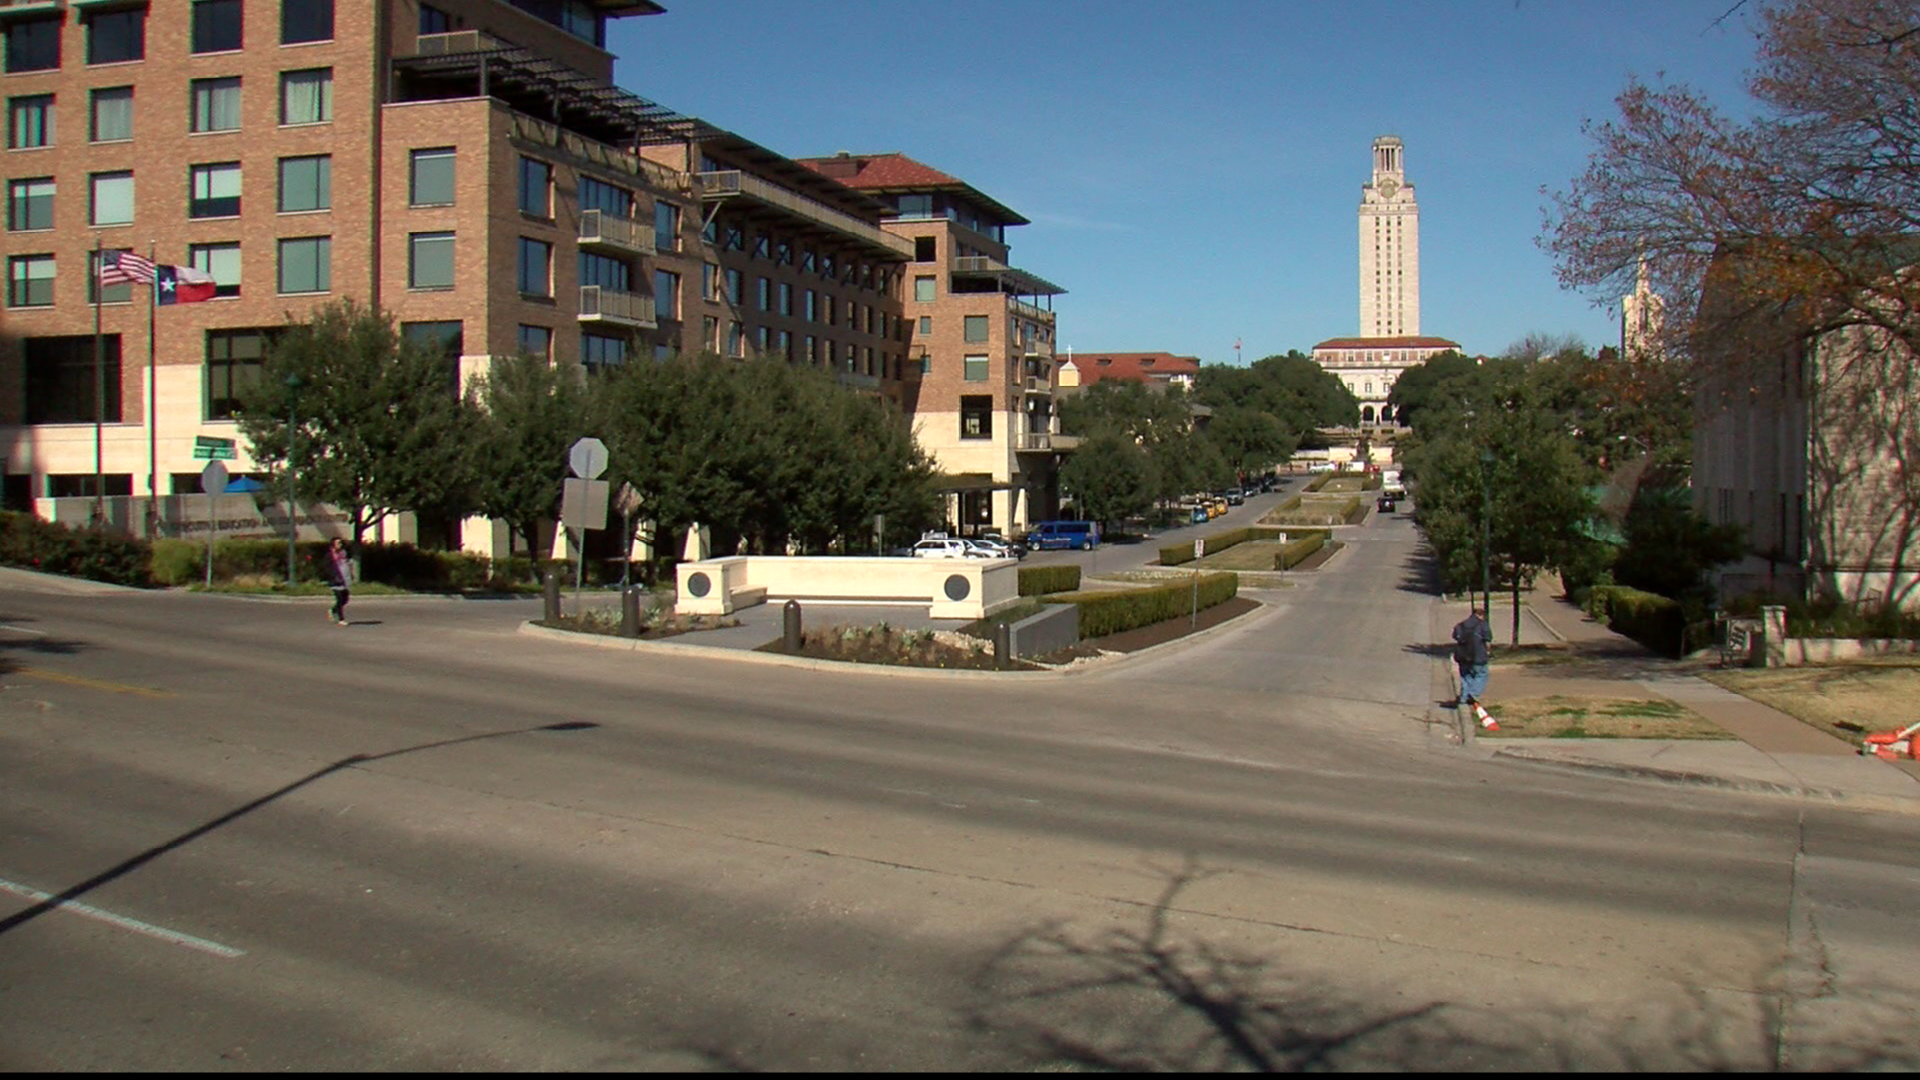 The gateway to UT Austin is located at University Avenue and E. Martin Luther King Jr. Blvd.